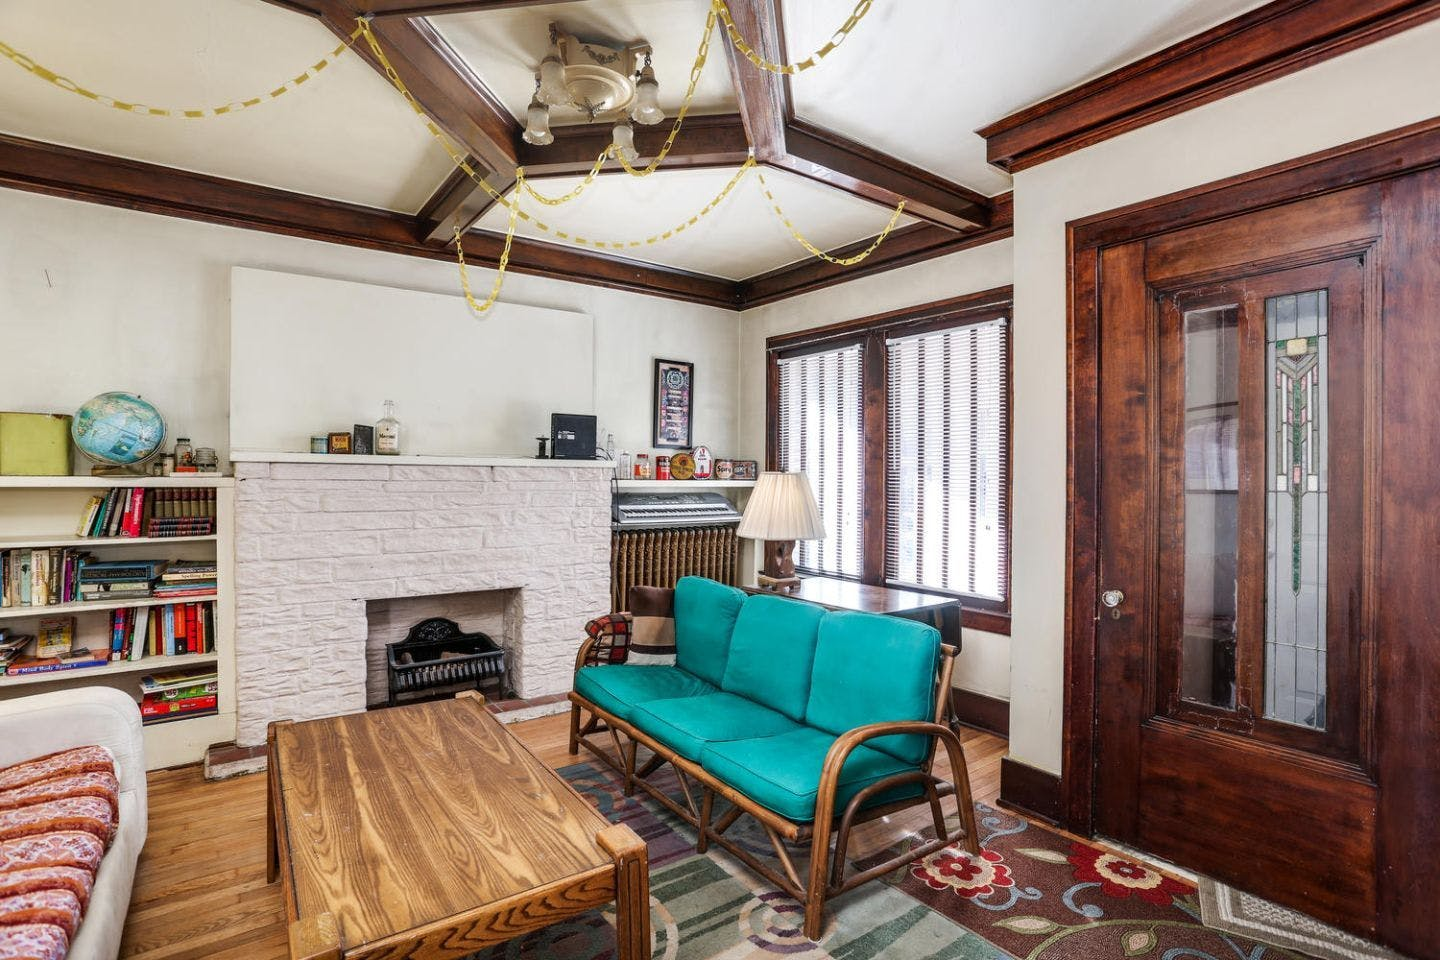 12 Residents | Burns Ave. - Pingree Park | Oversized Classic House - Incl. Workspace